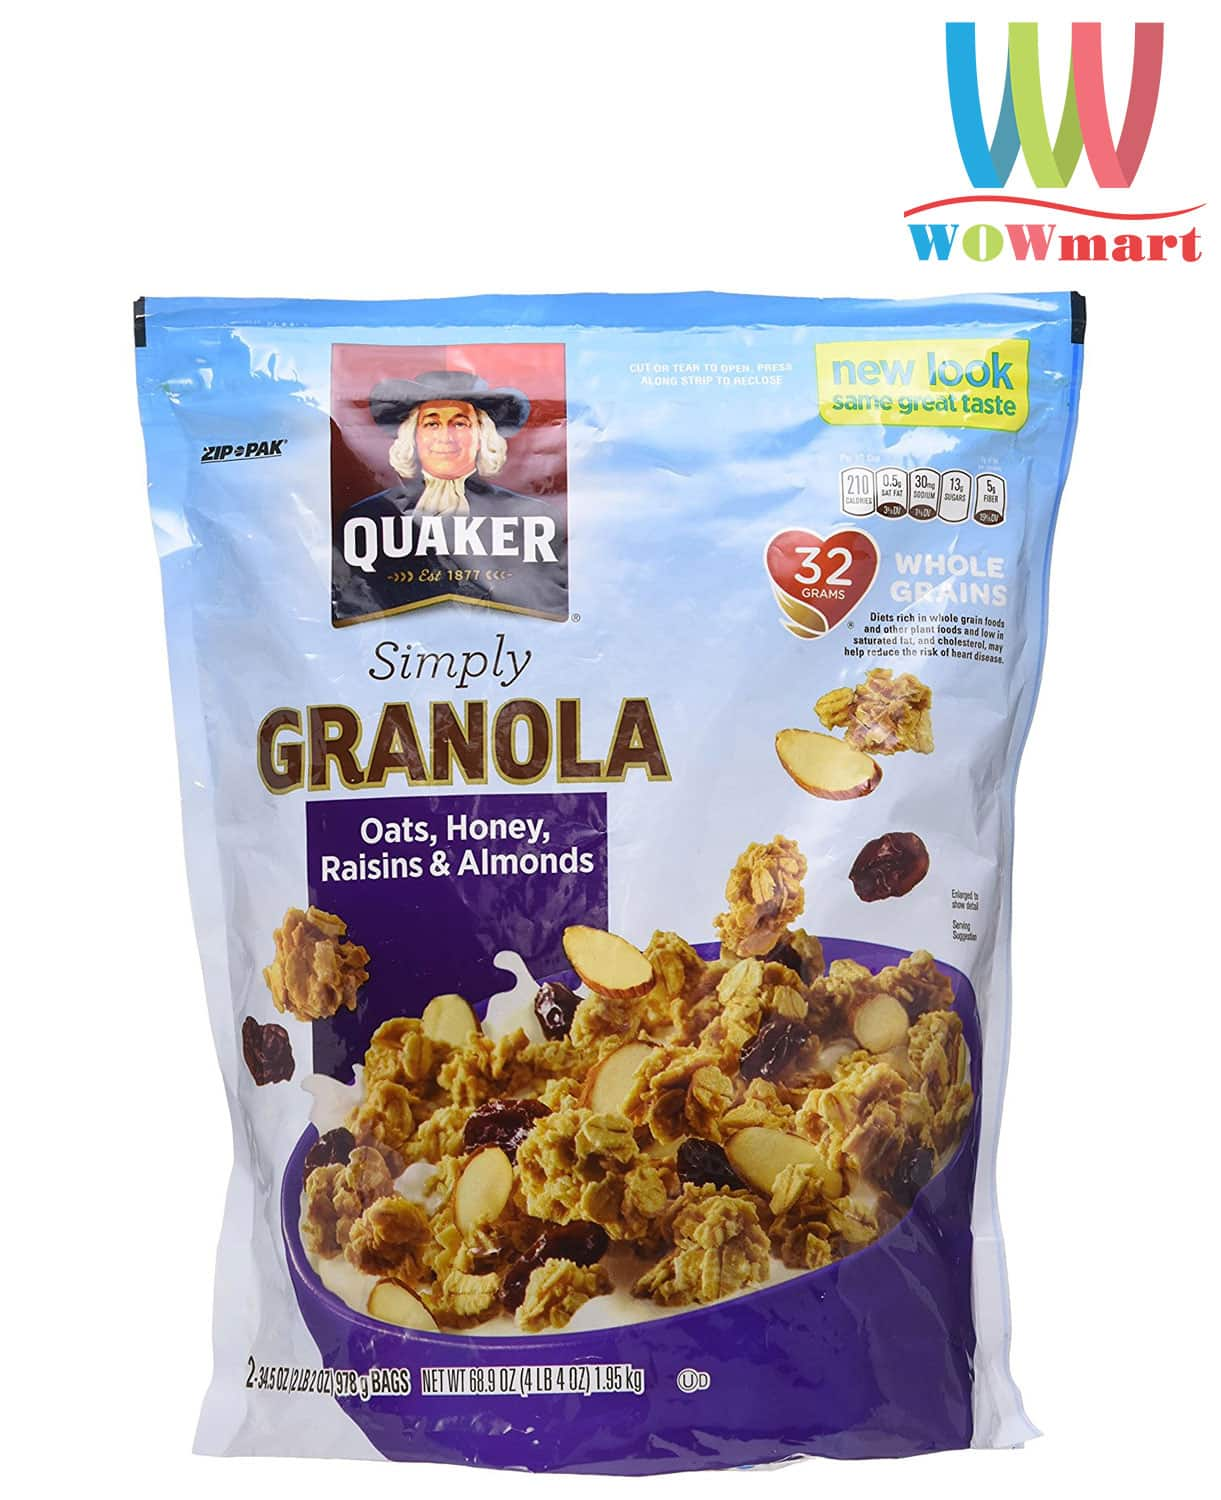 yen-mach-mat-ong-quaker-simply-granola-oats-honey-raisins-almonds-1-95kg-2018